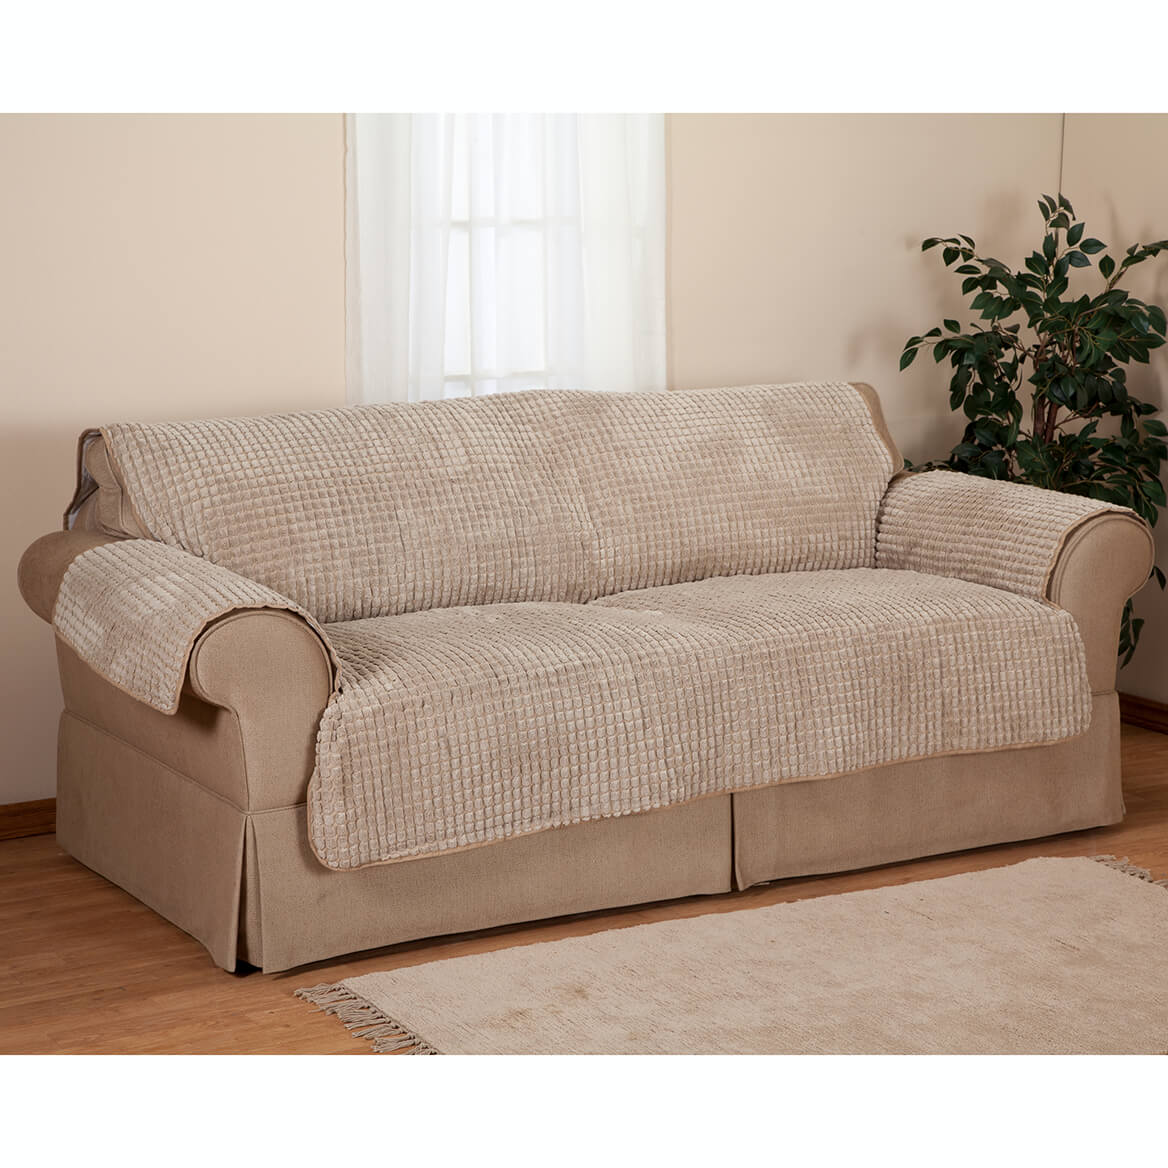 Chenille sofa furniture protector sofa protector miles kimball Chenille sofa and loveseat